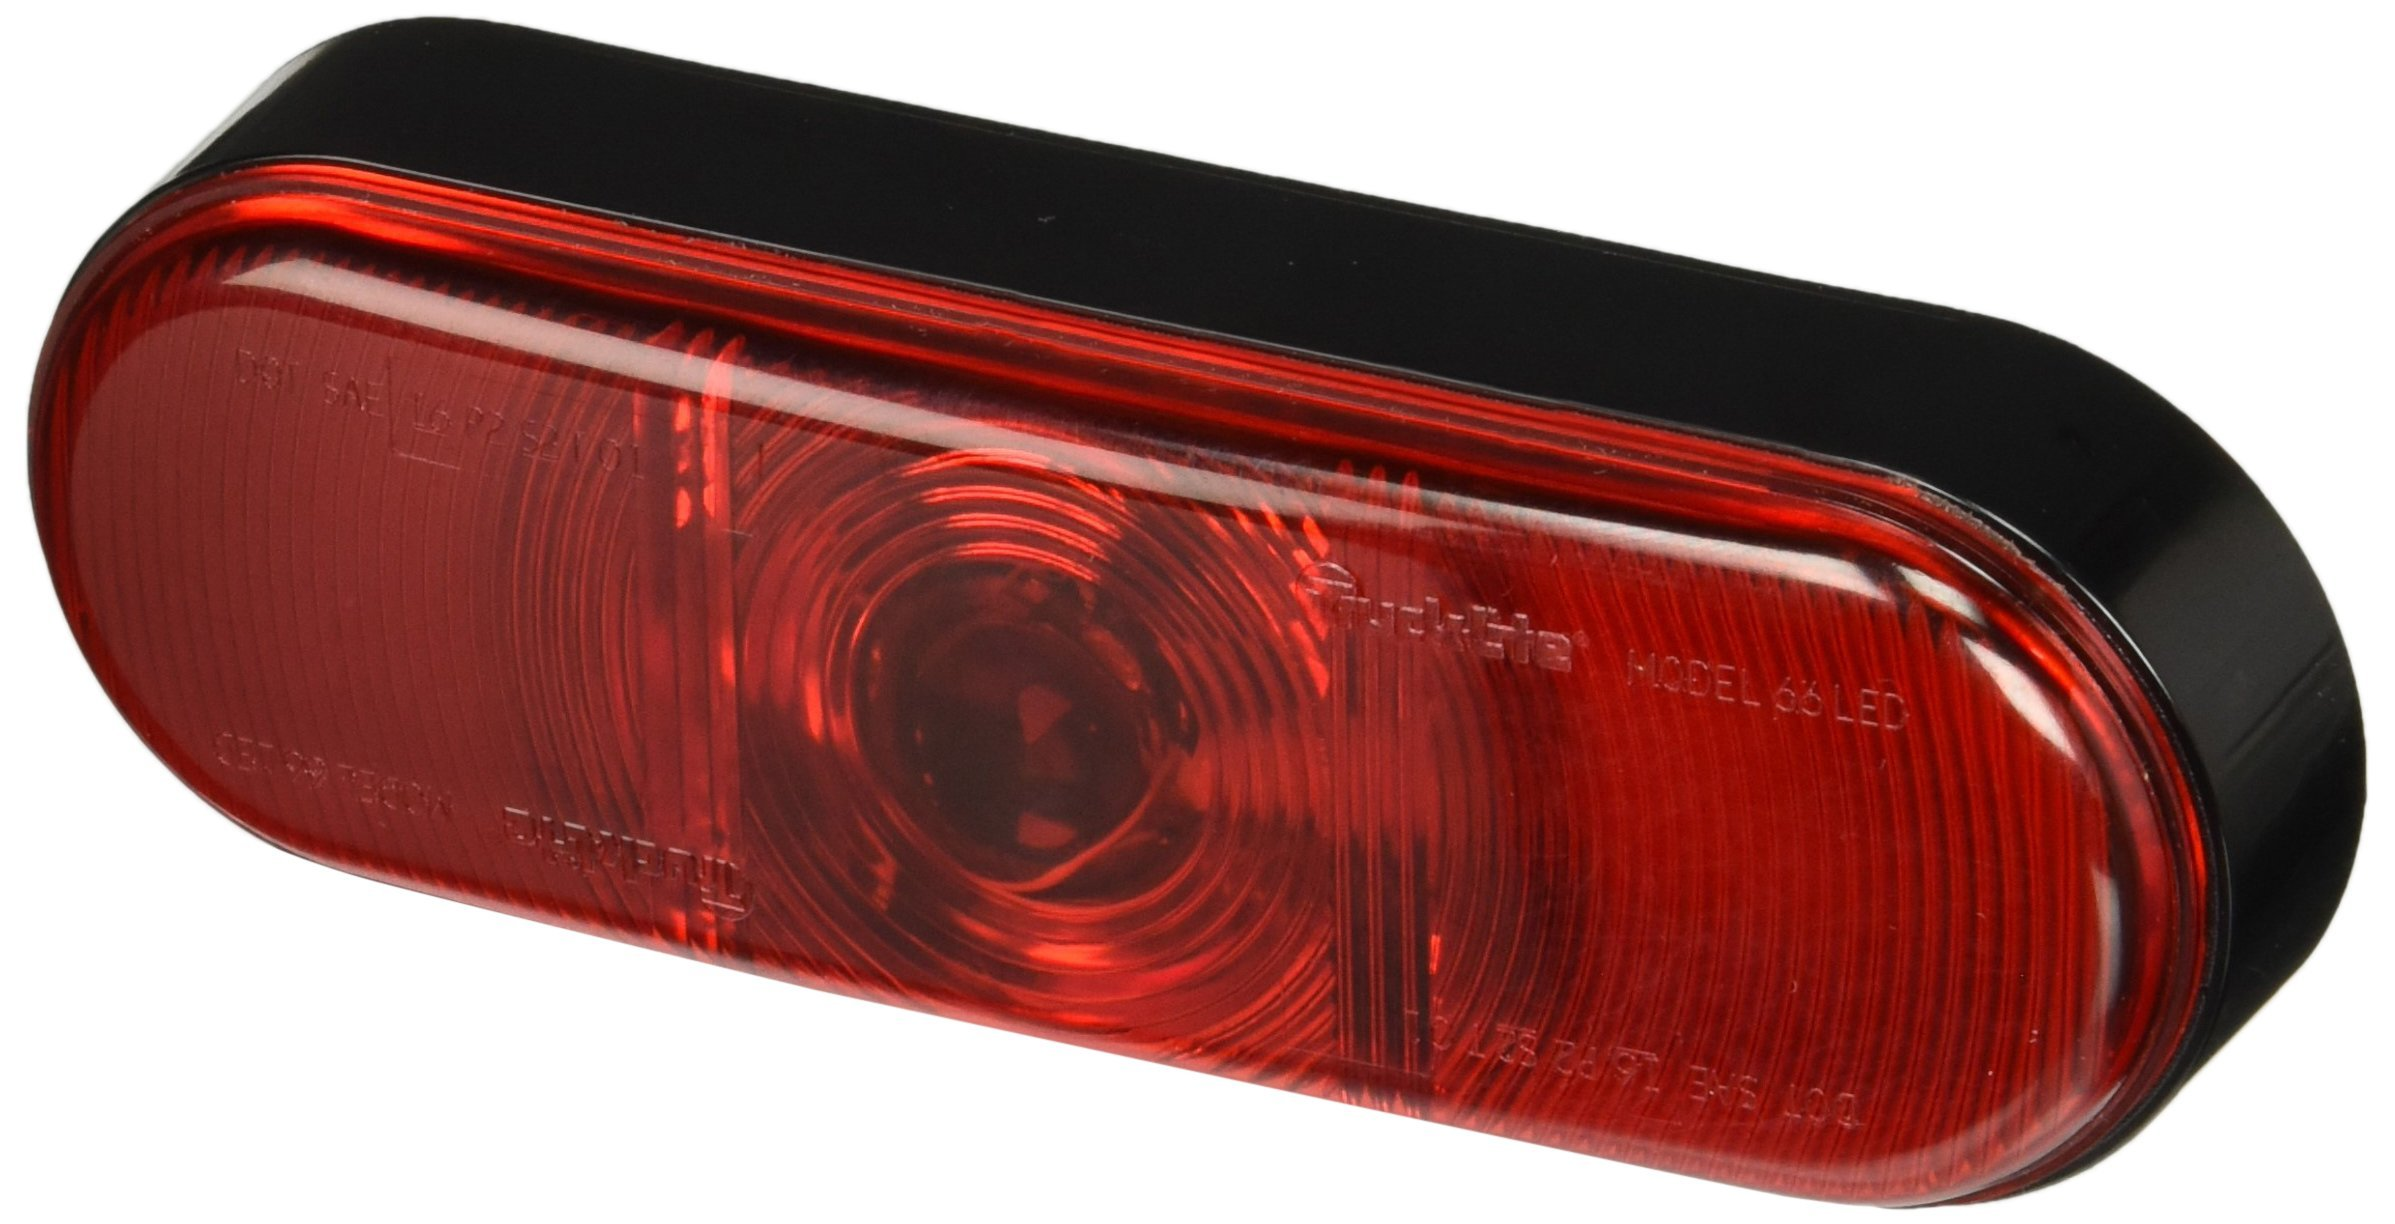 Truck-Lite (66250R) Stop/Turn/Tail LED Light Kit by Truck-Lite